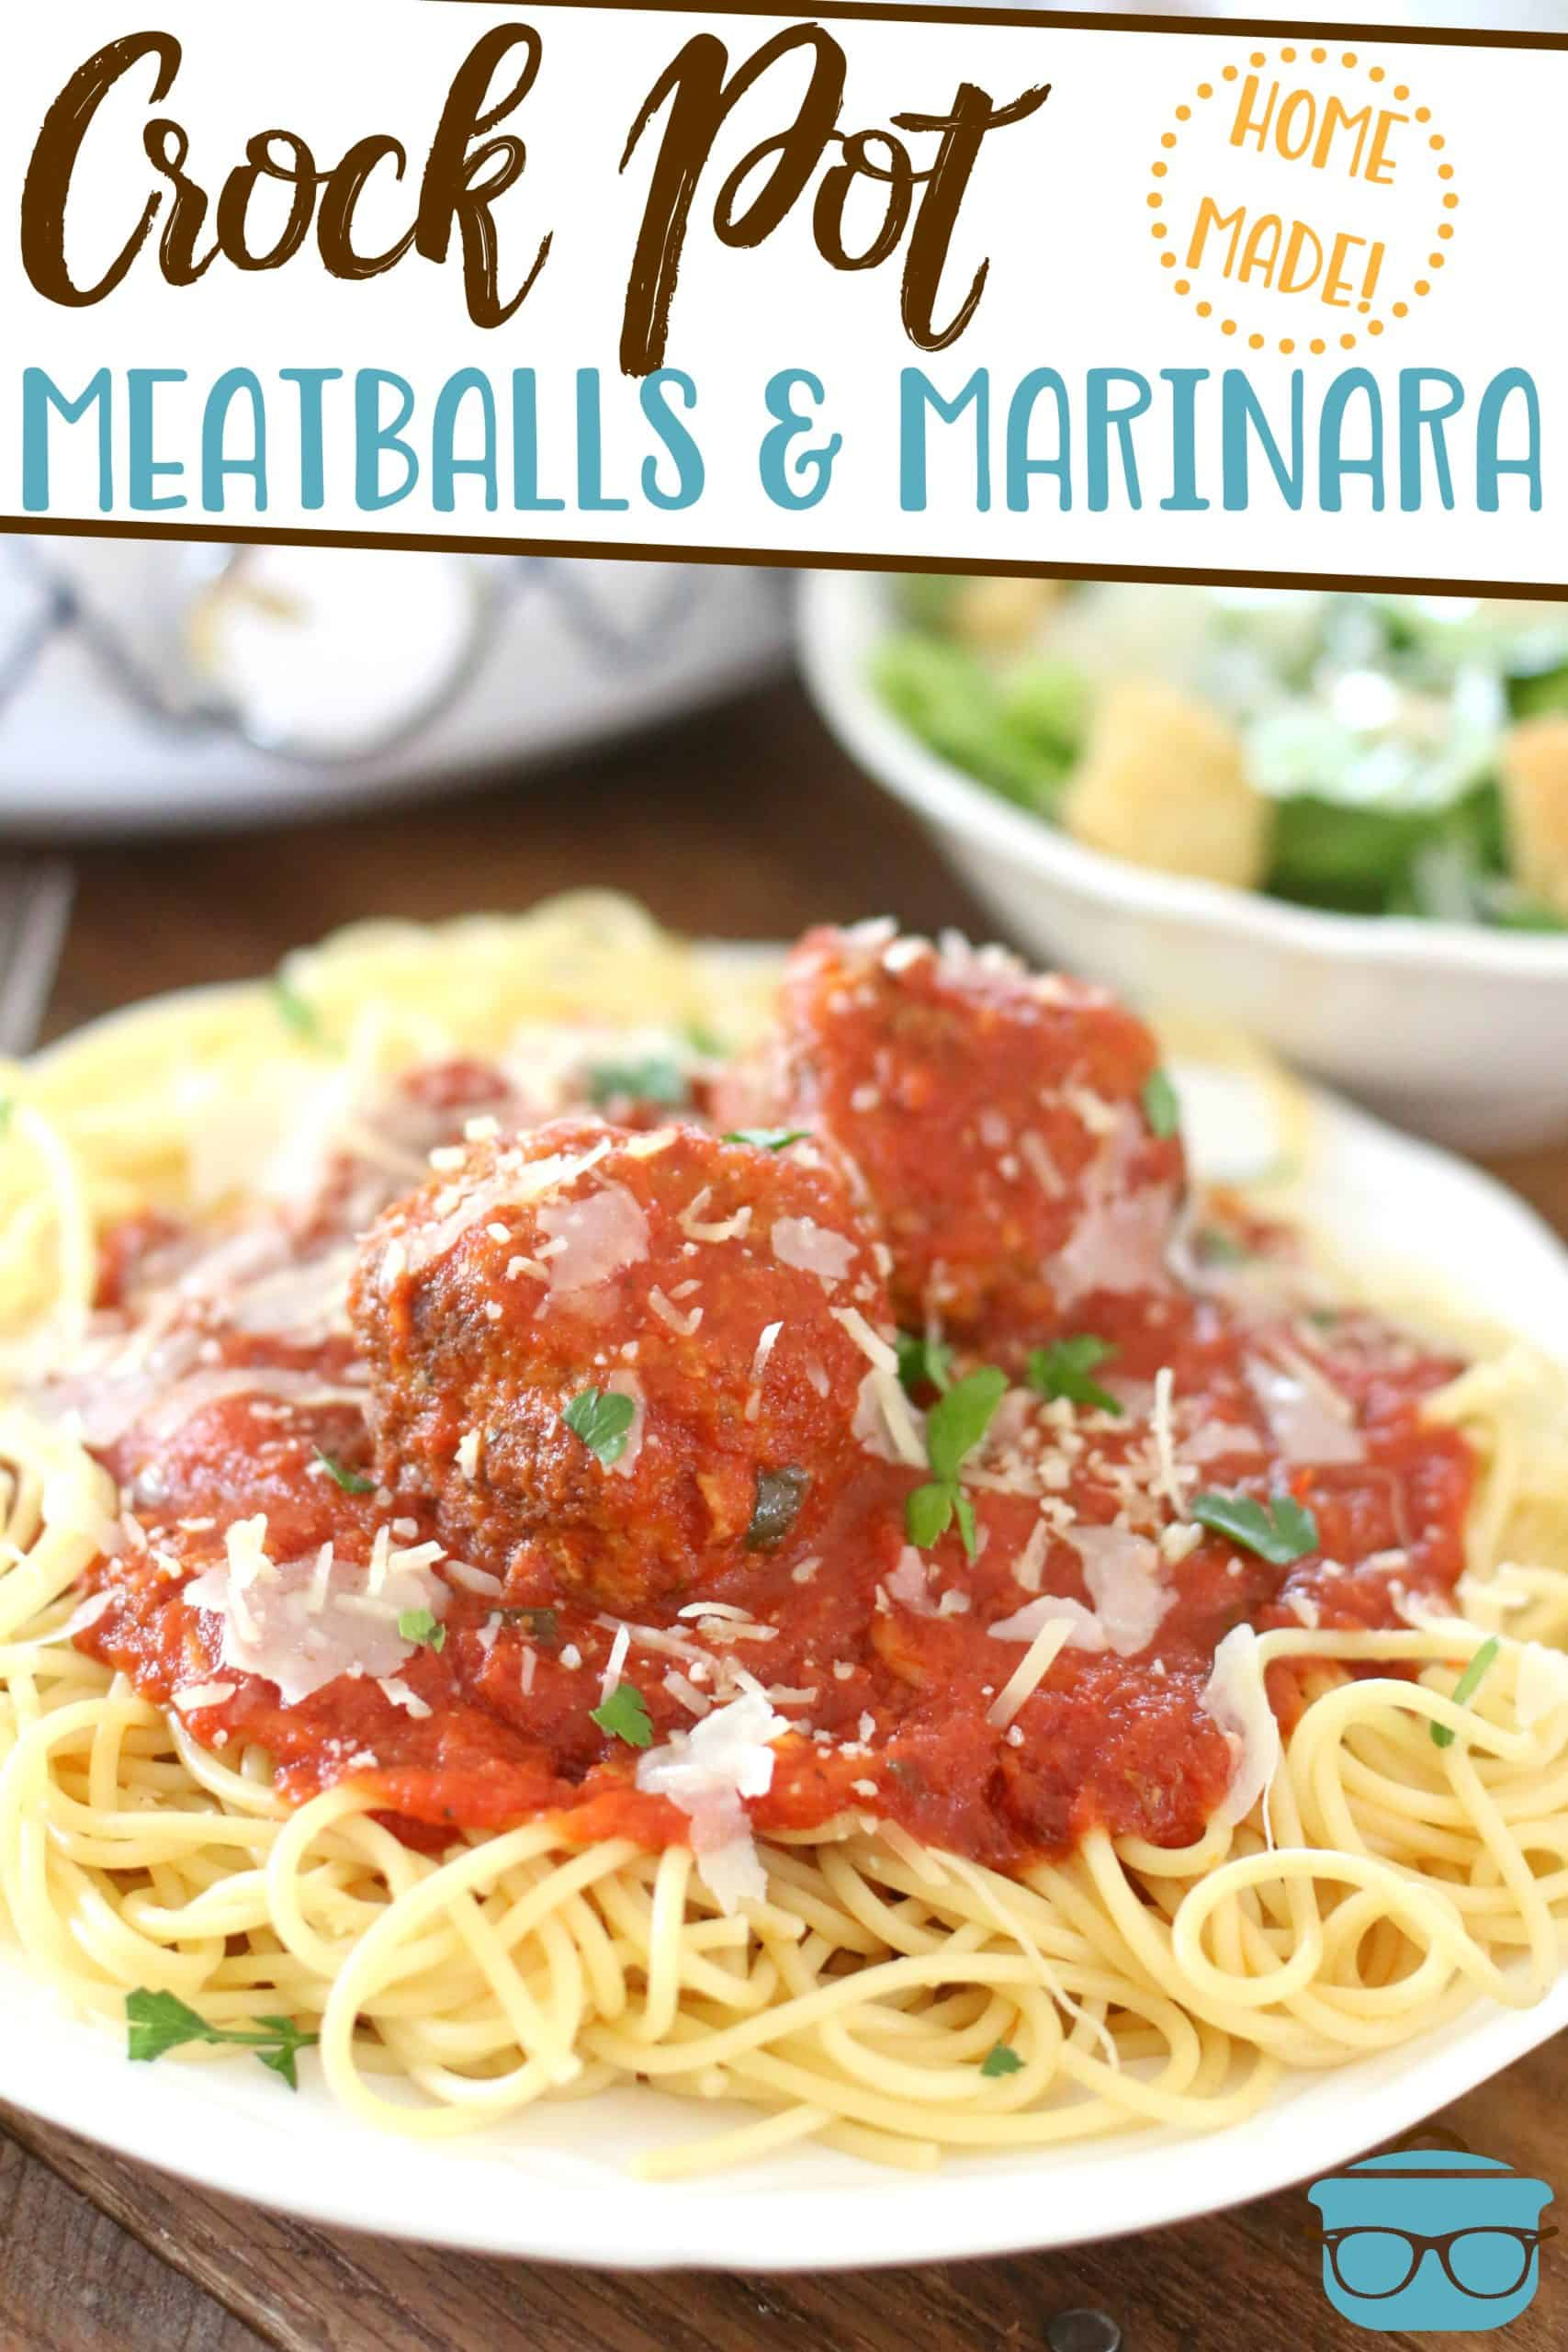 This Crock Pot Homemade Meatballs and Marinara Sauce is the ultimate comfort food. Fresh ingredients simmered all day in a crock pot. Put on your favorite pasta!